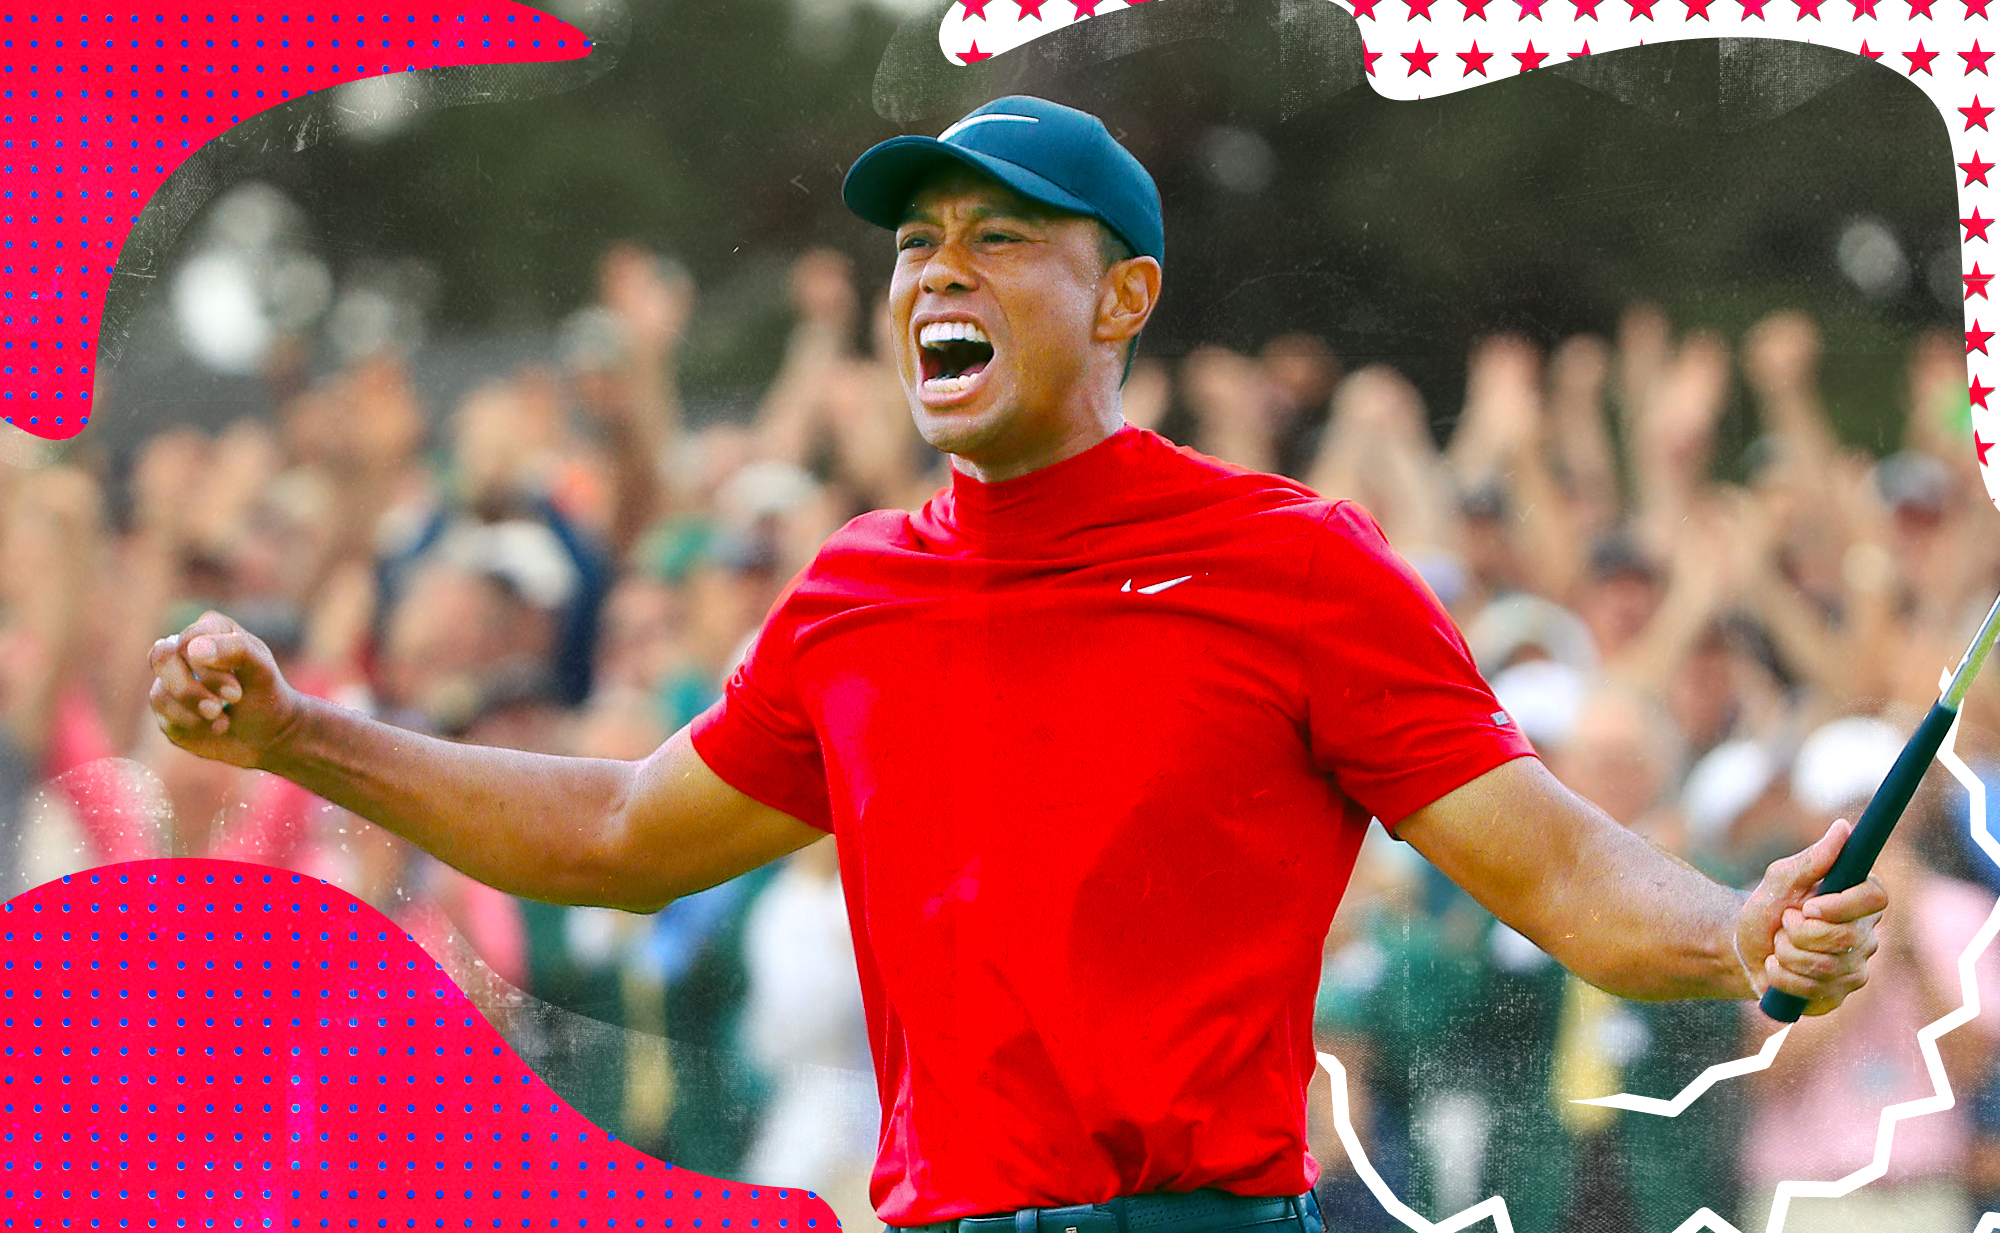 Tiger Woods celebrating with a golf club in hand while wearing his iconic red Nike pullover.